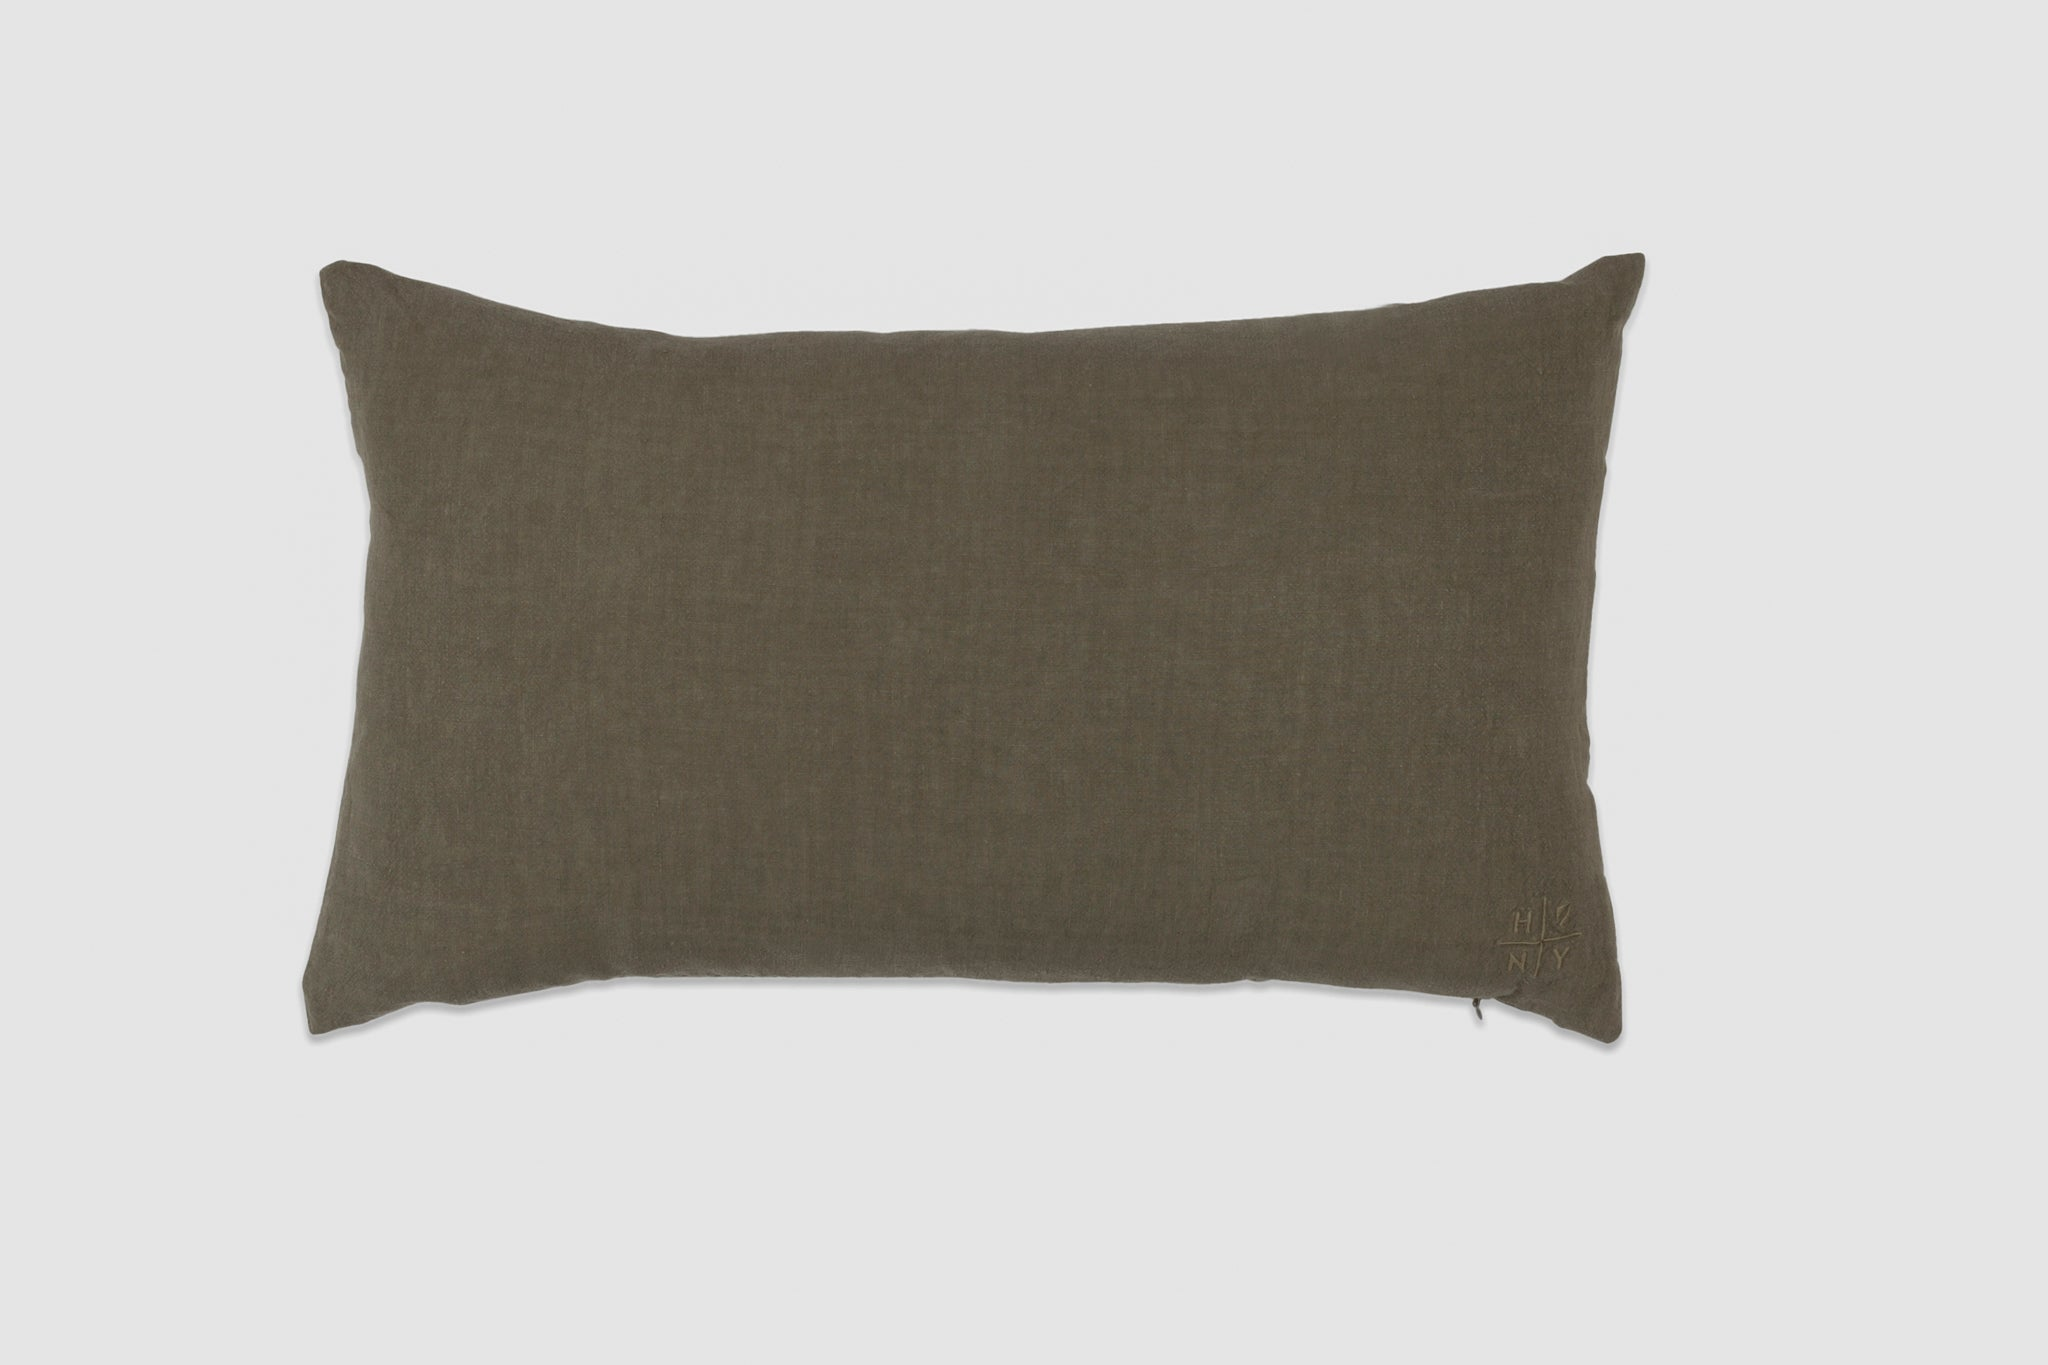 Simple Linen Pillow 22 x 12 Olive